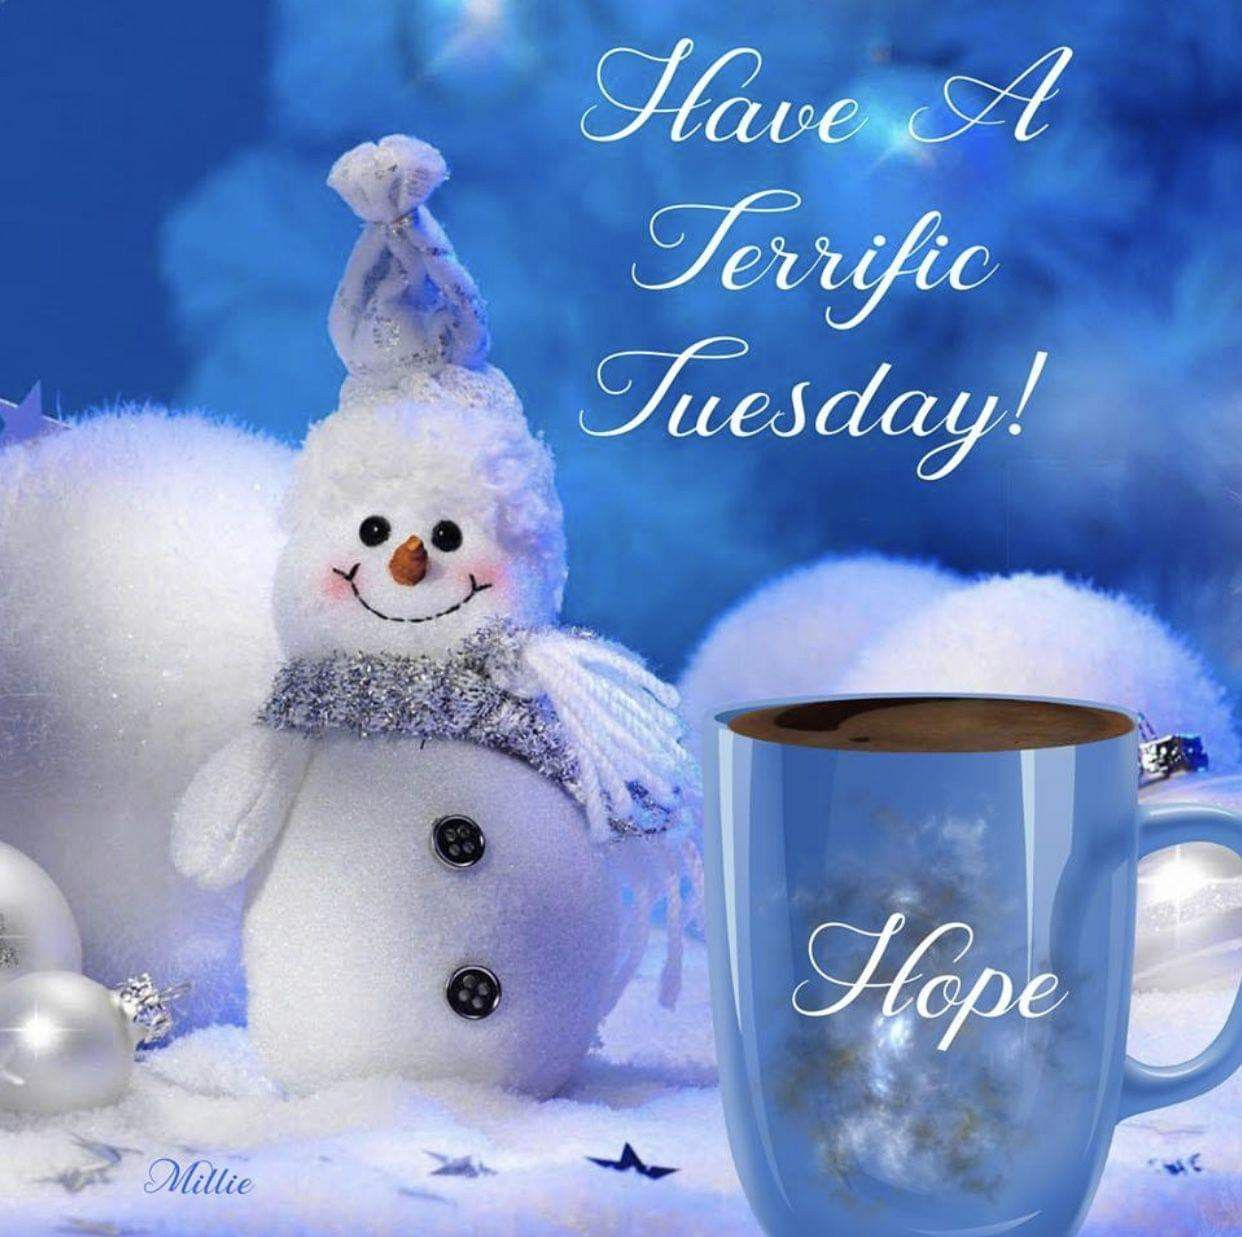 Tuesday Blessings Tuesday Quotes Good Morning Tuesday Greetings Good Morning Winter